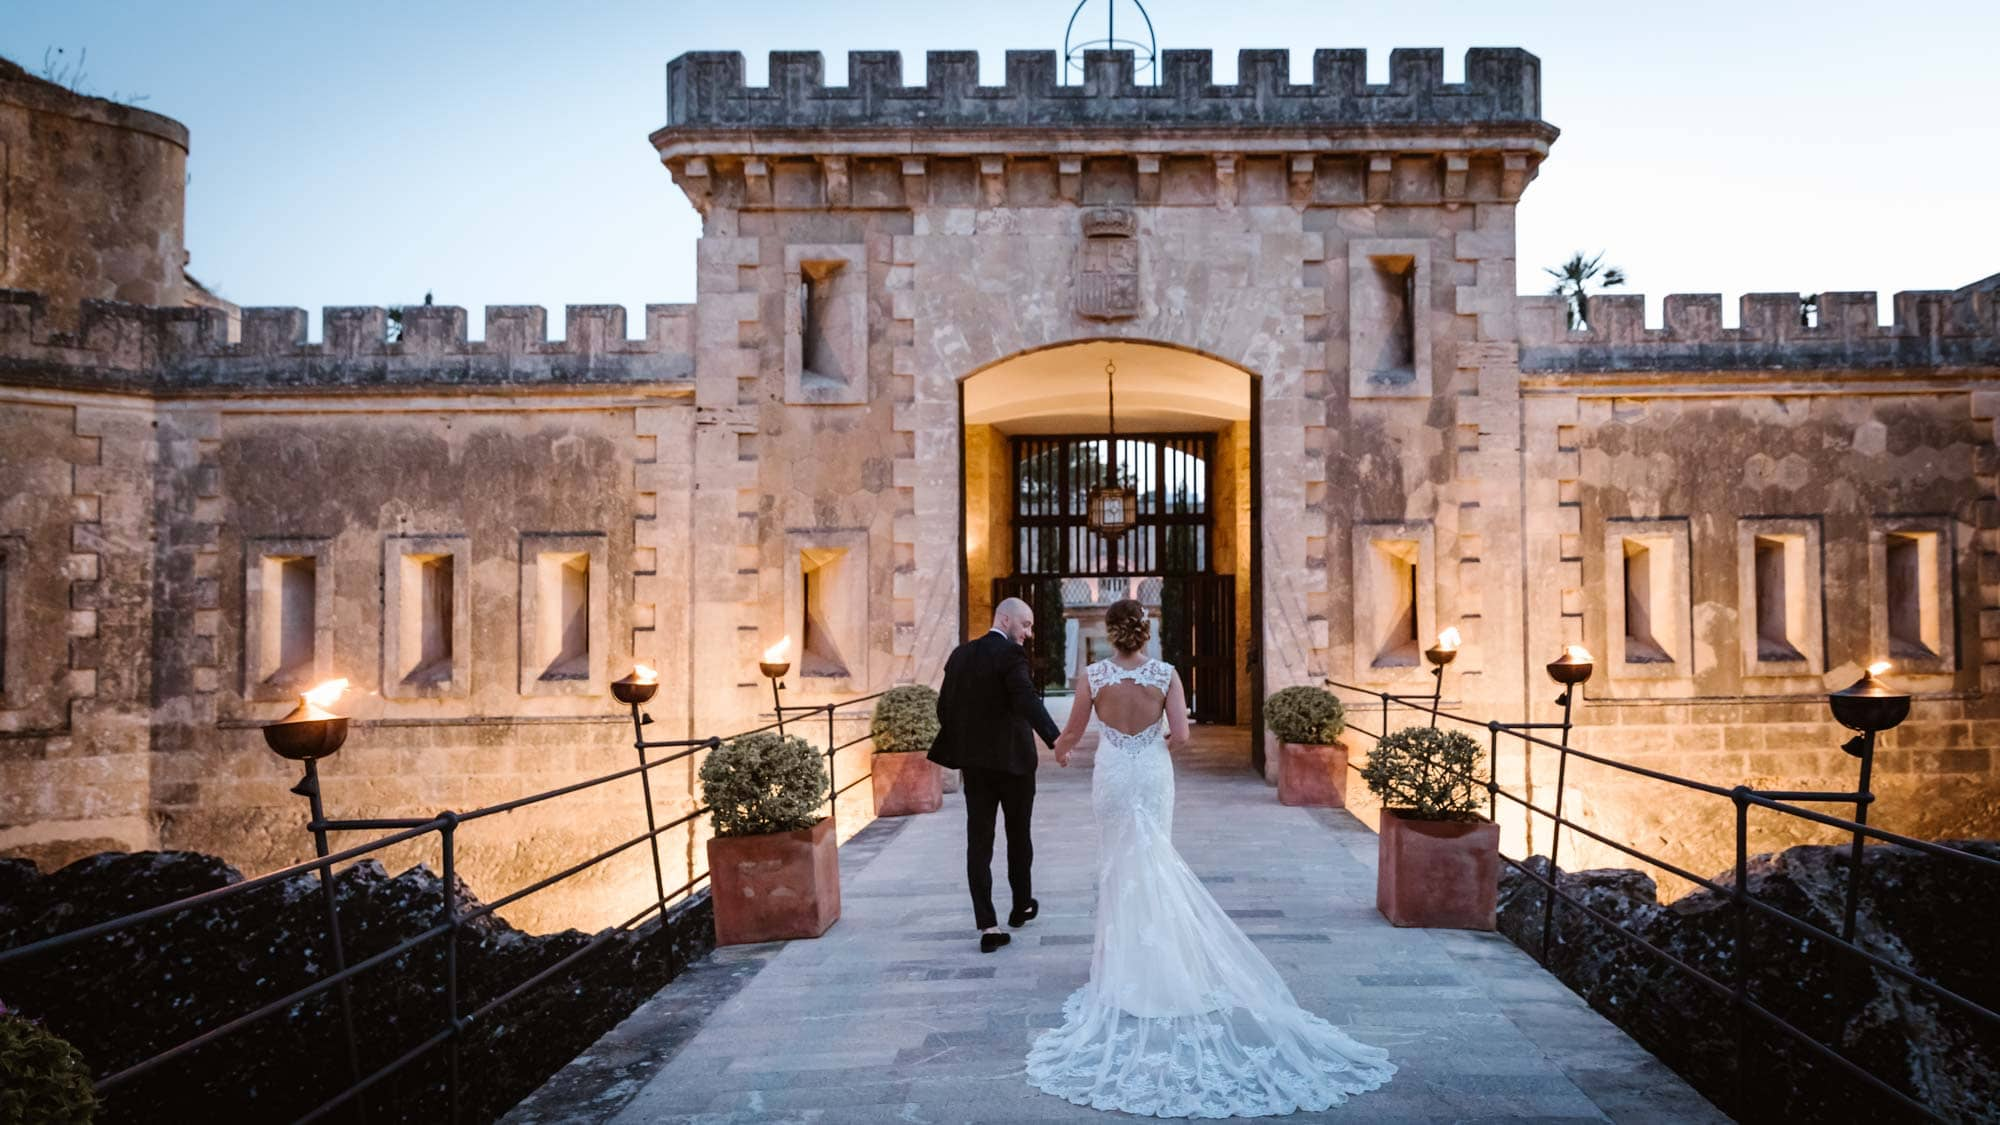 Cap Rocat is one of the most special Mallorca wedding venues on the beautiful island of Mallorca